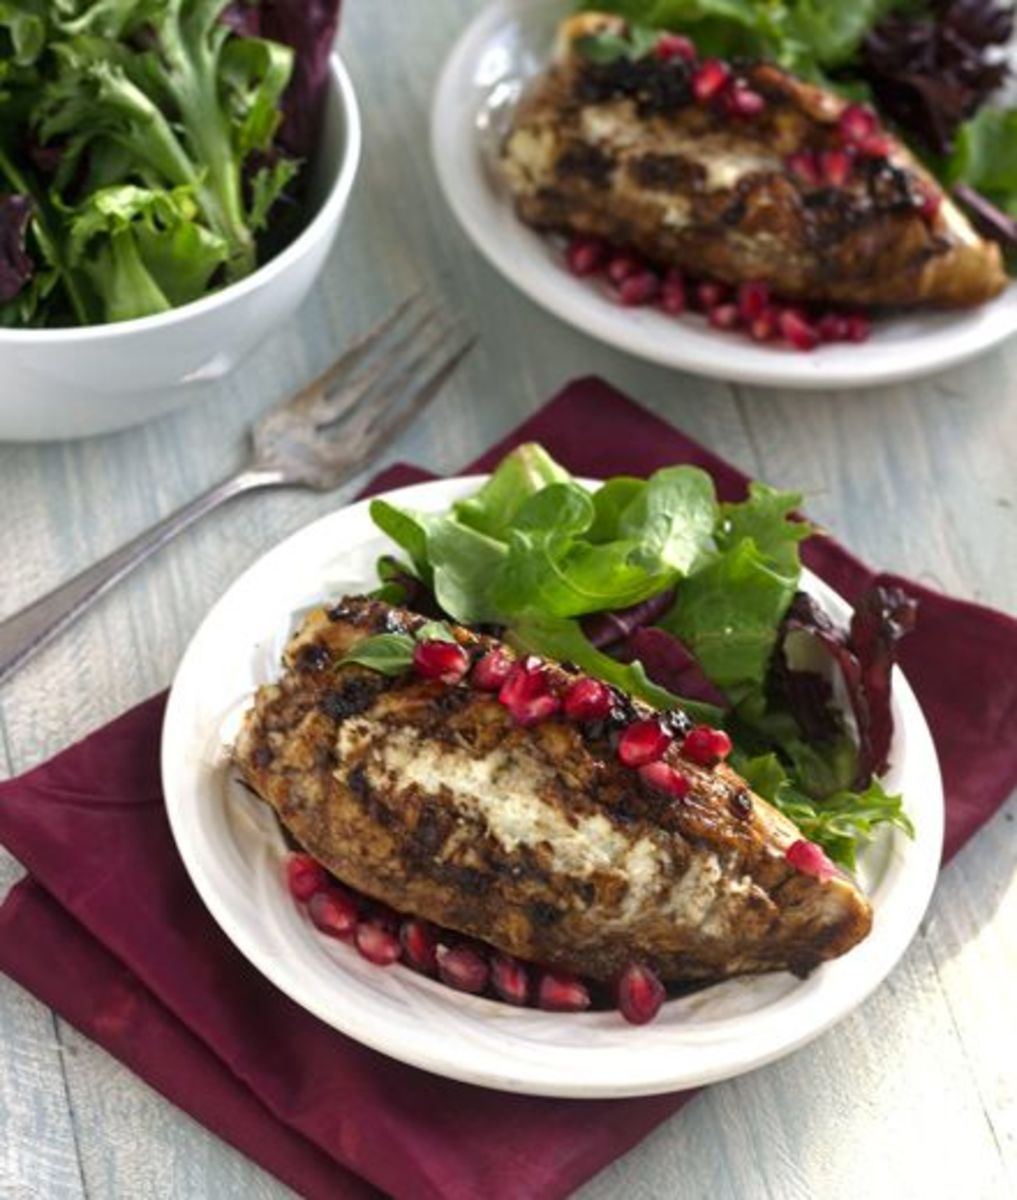 Goat Cheese Stuffed Pomegranate Chicken with Balsamic Reduction | Food Faith Fitness